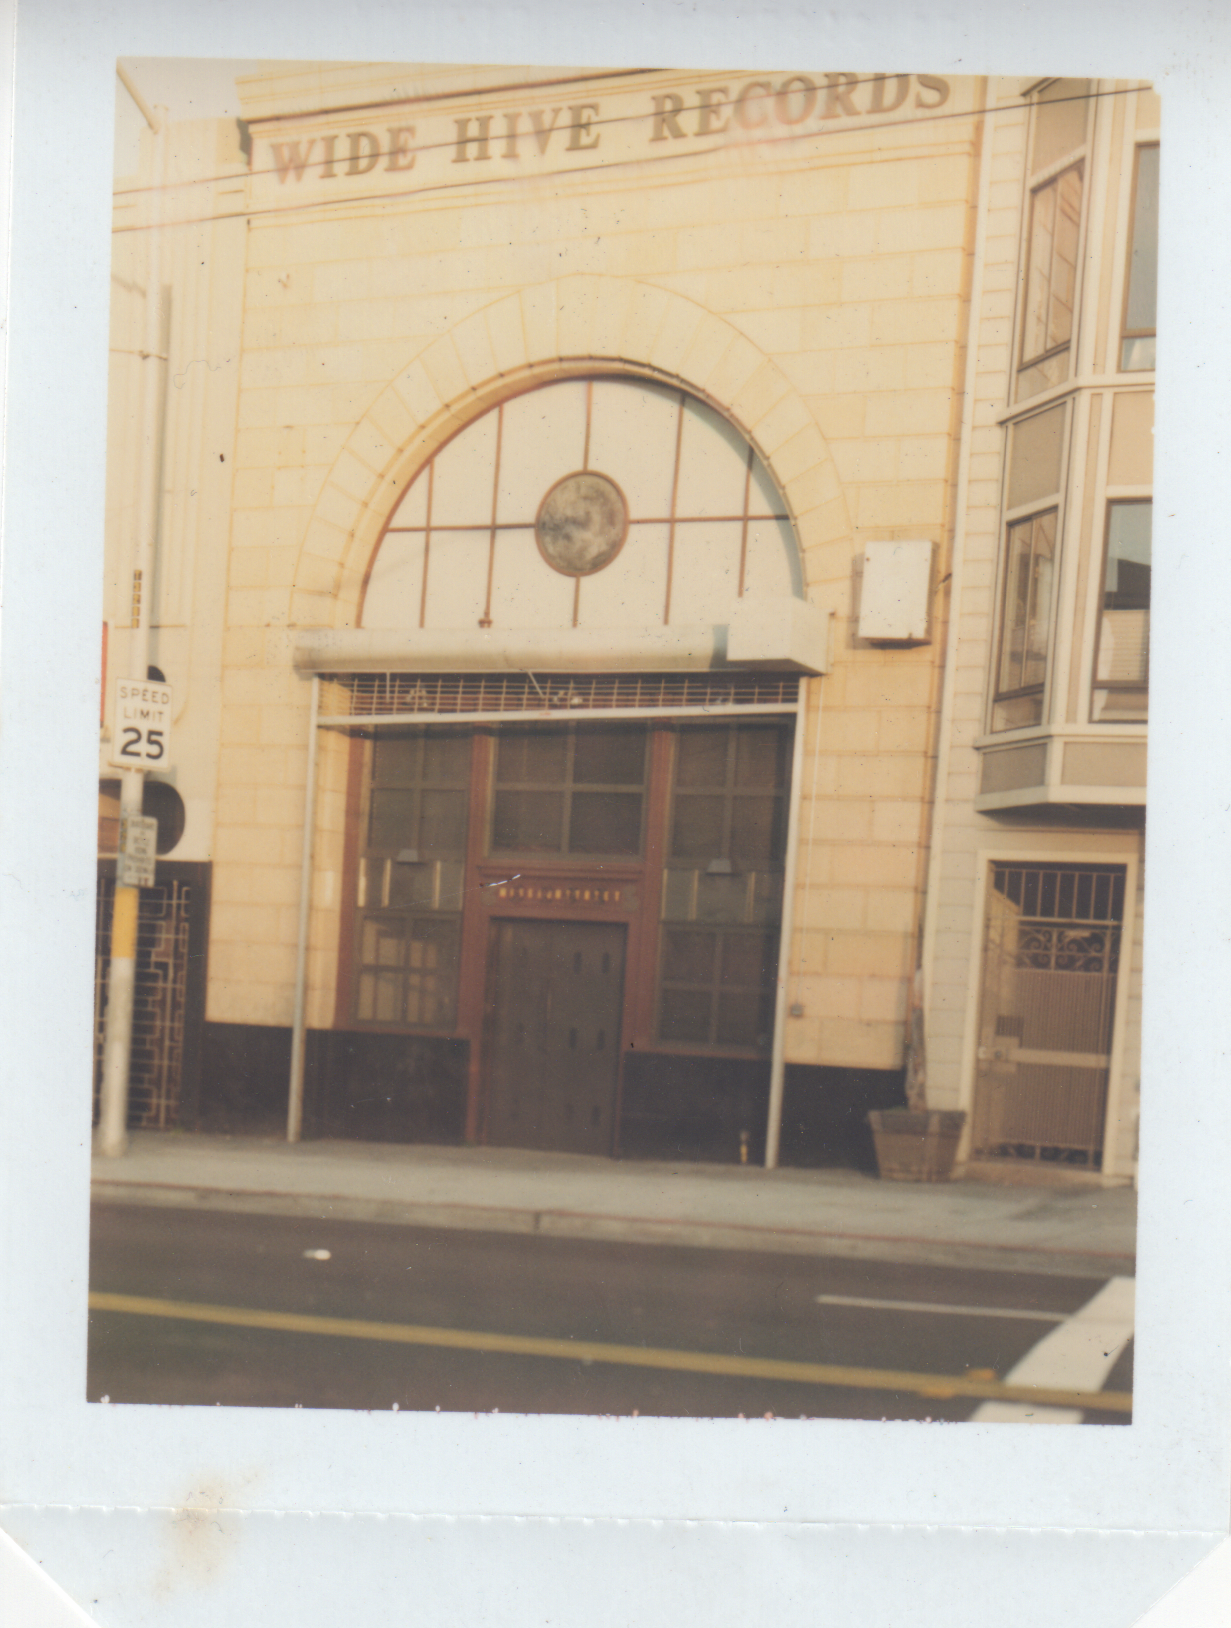 Photo of original Wide Hive Building, circa 1999.